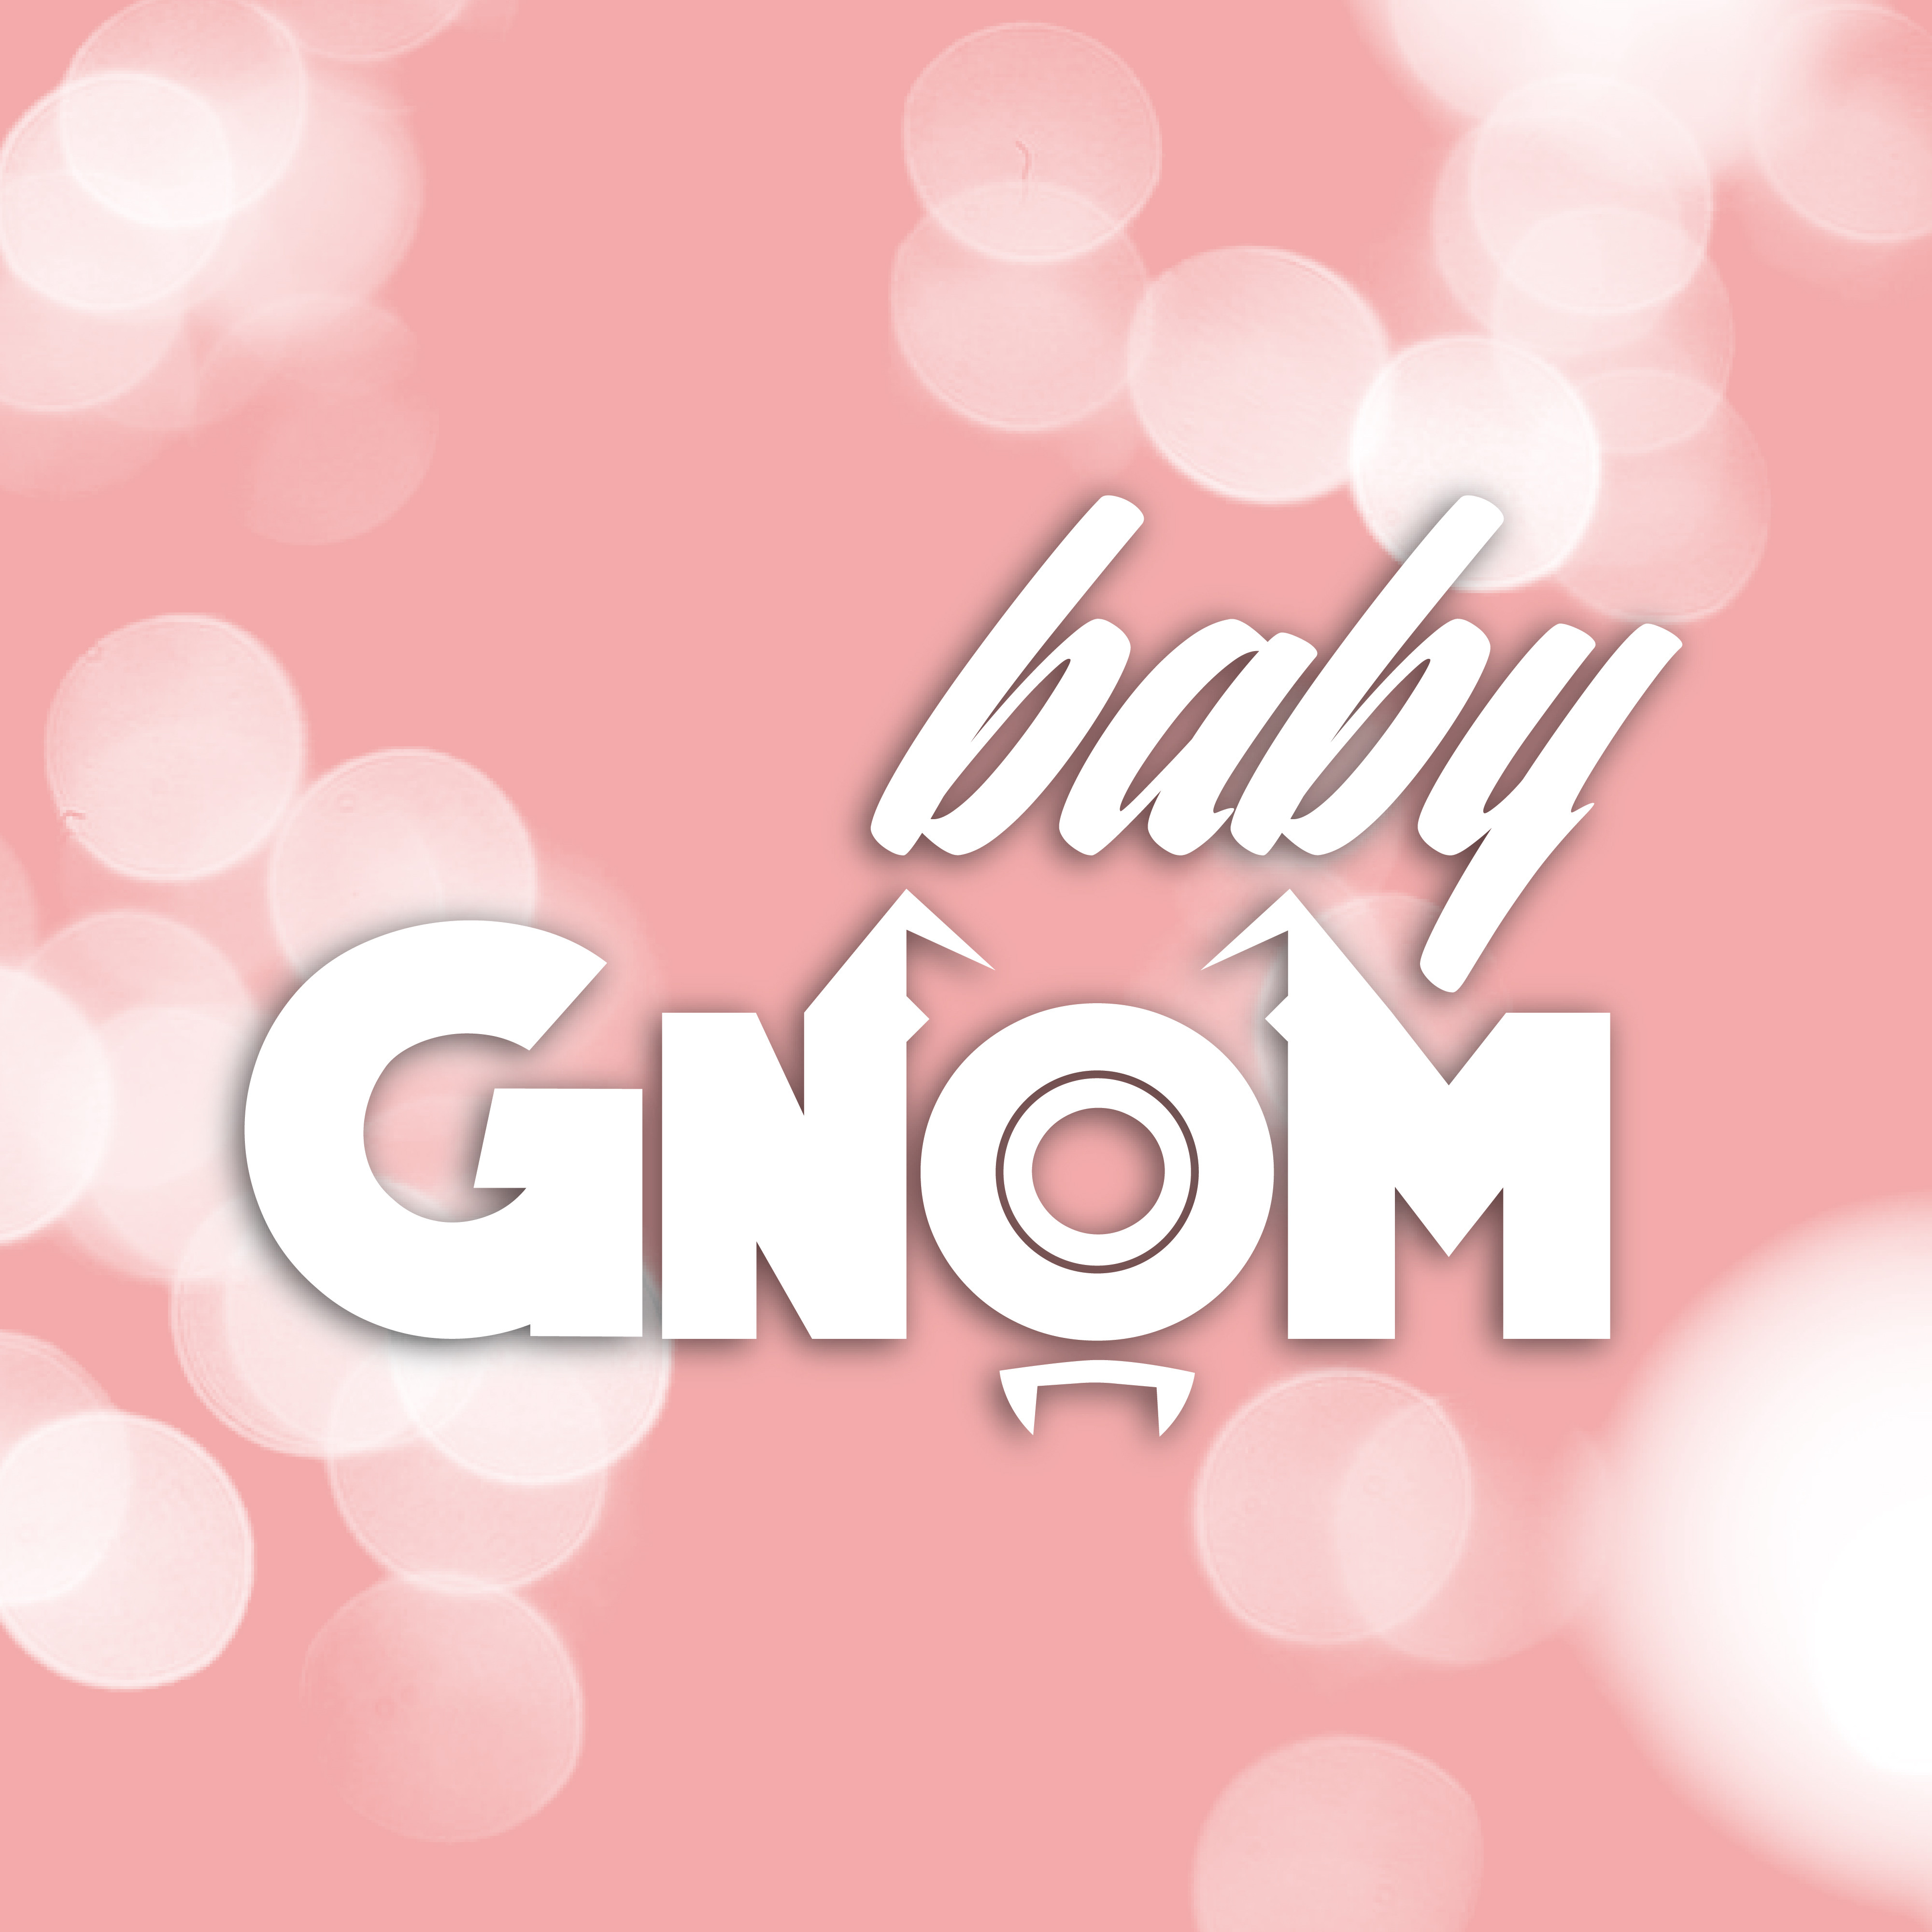 BabyGnom's profile picture